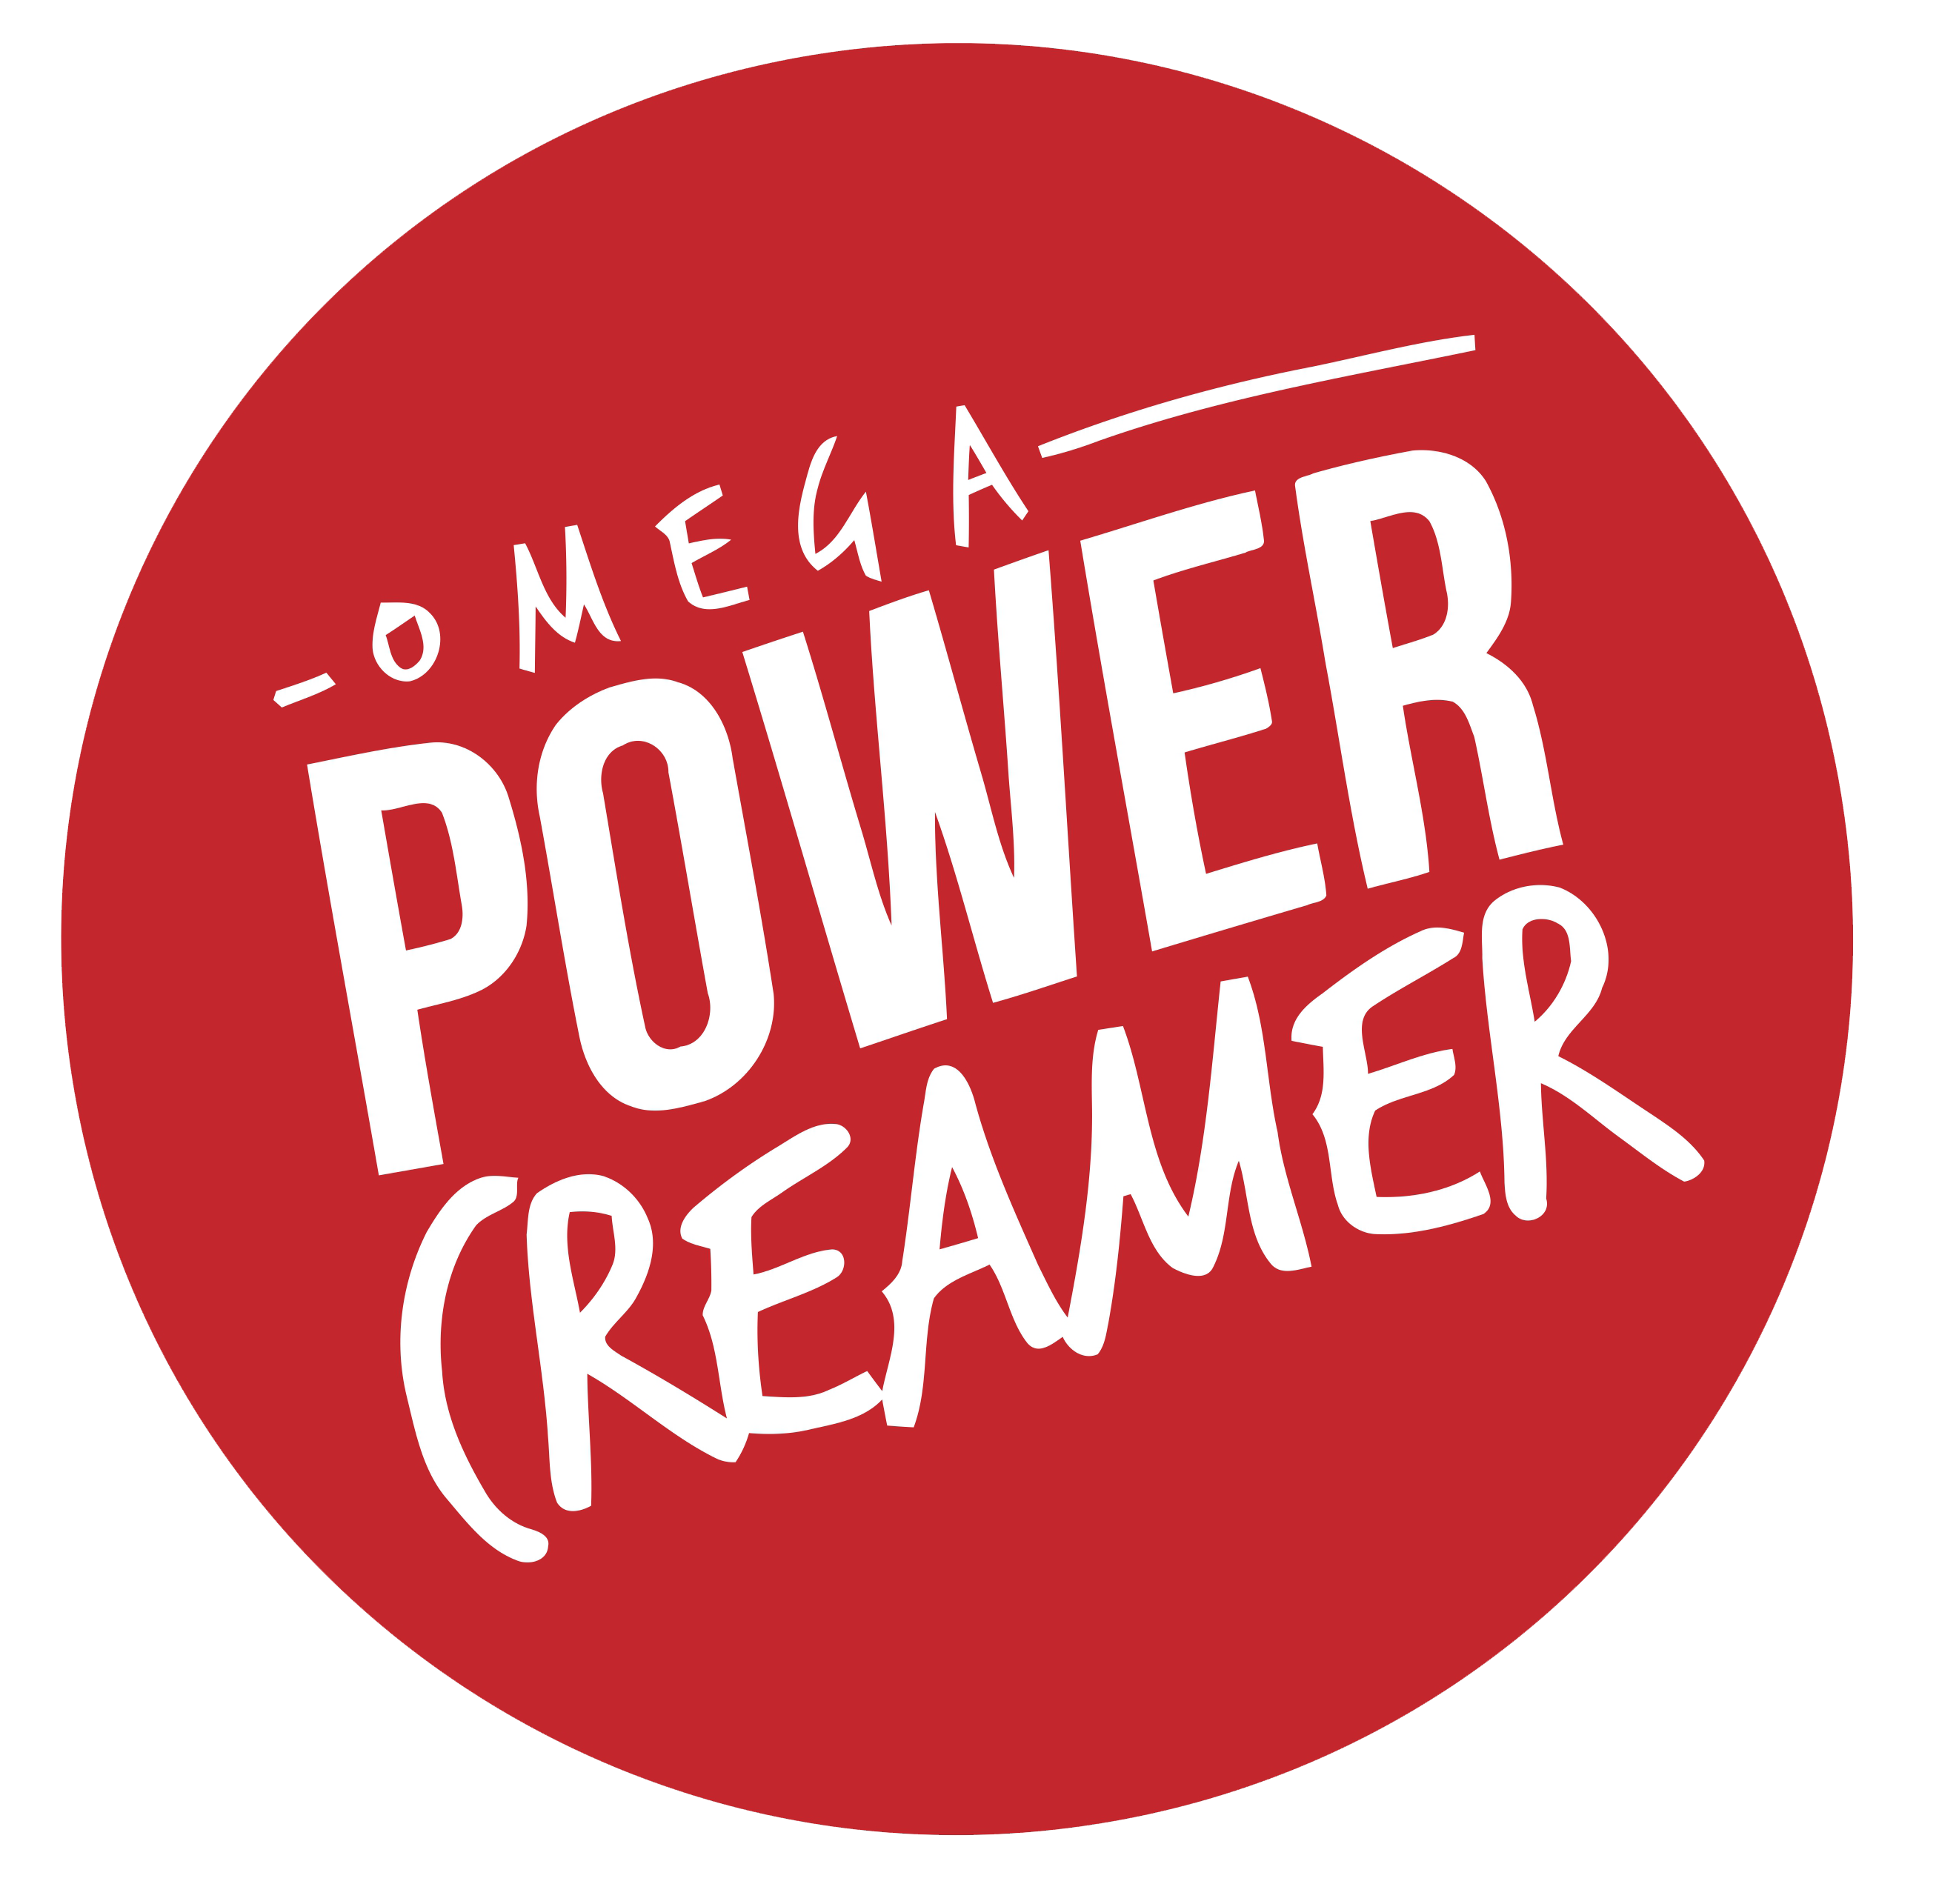 Omega PowerCreamer